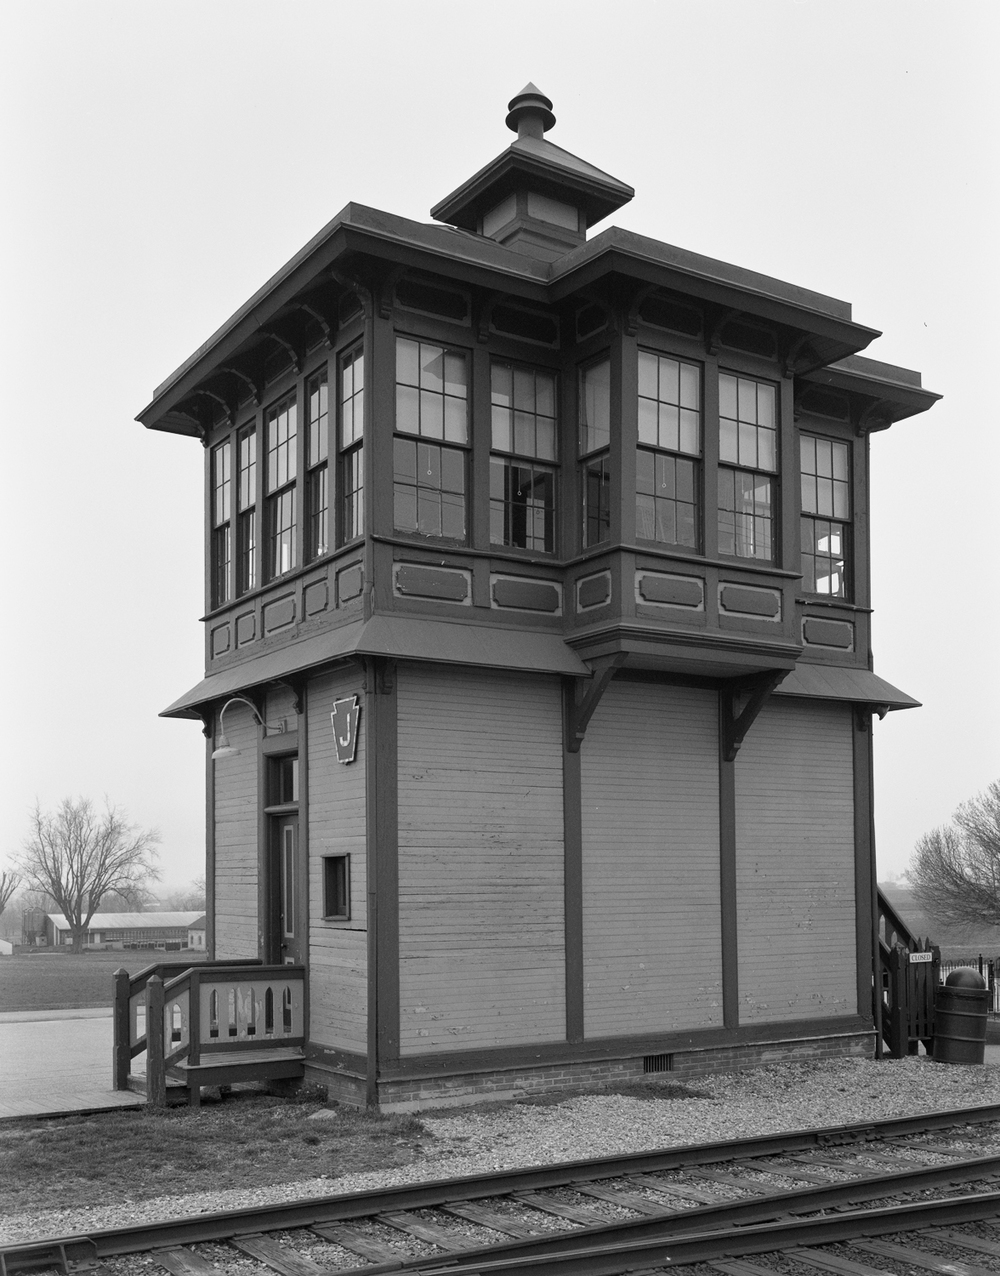 One of only two surviving examples of early PRR wood frame two story switch towers, J Tower survives today as part of the interactive experience at the Strasburg Railroad.